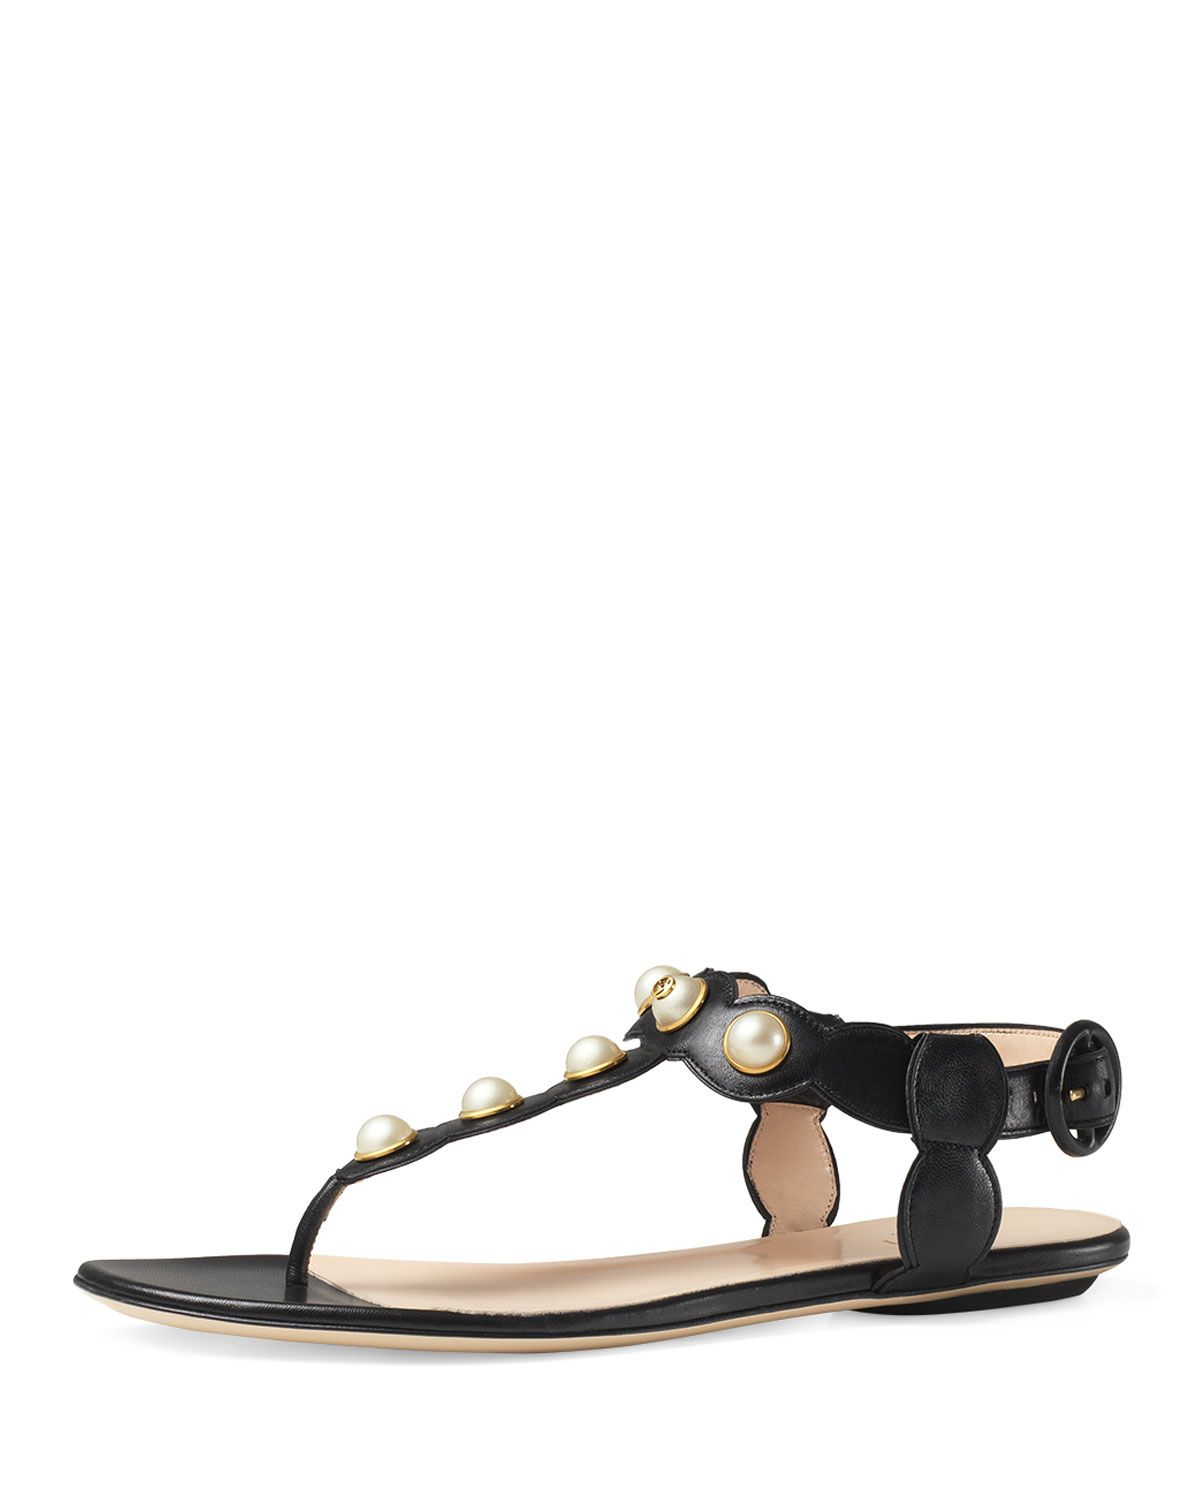 480436fcd70 Gucci Willow Pearly Thong Sandal